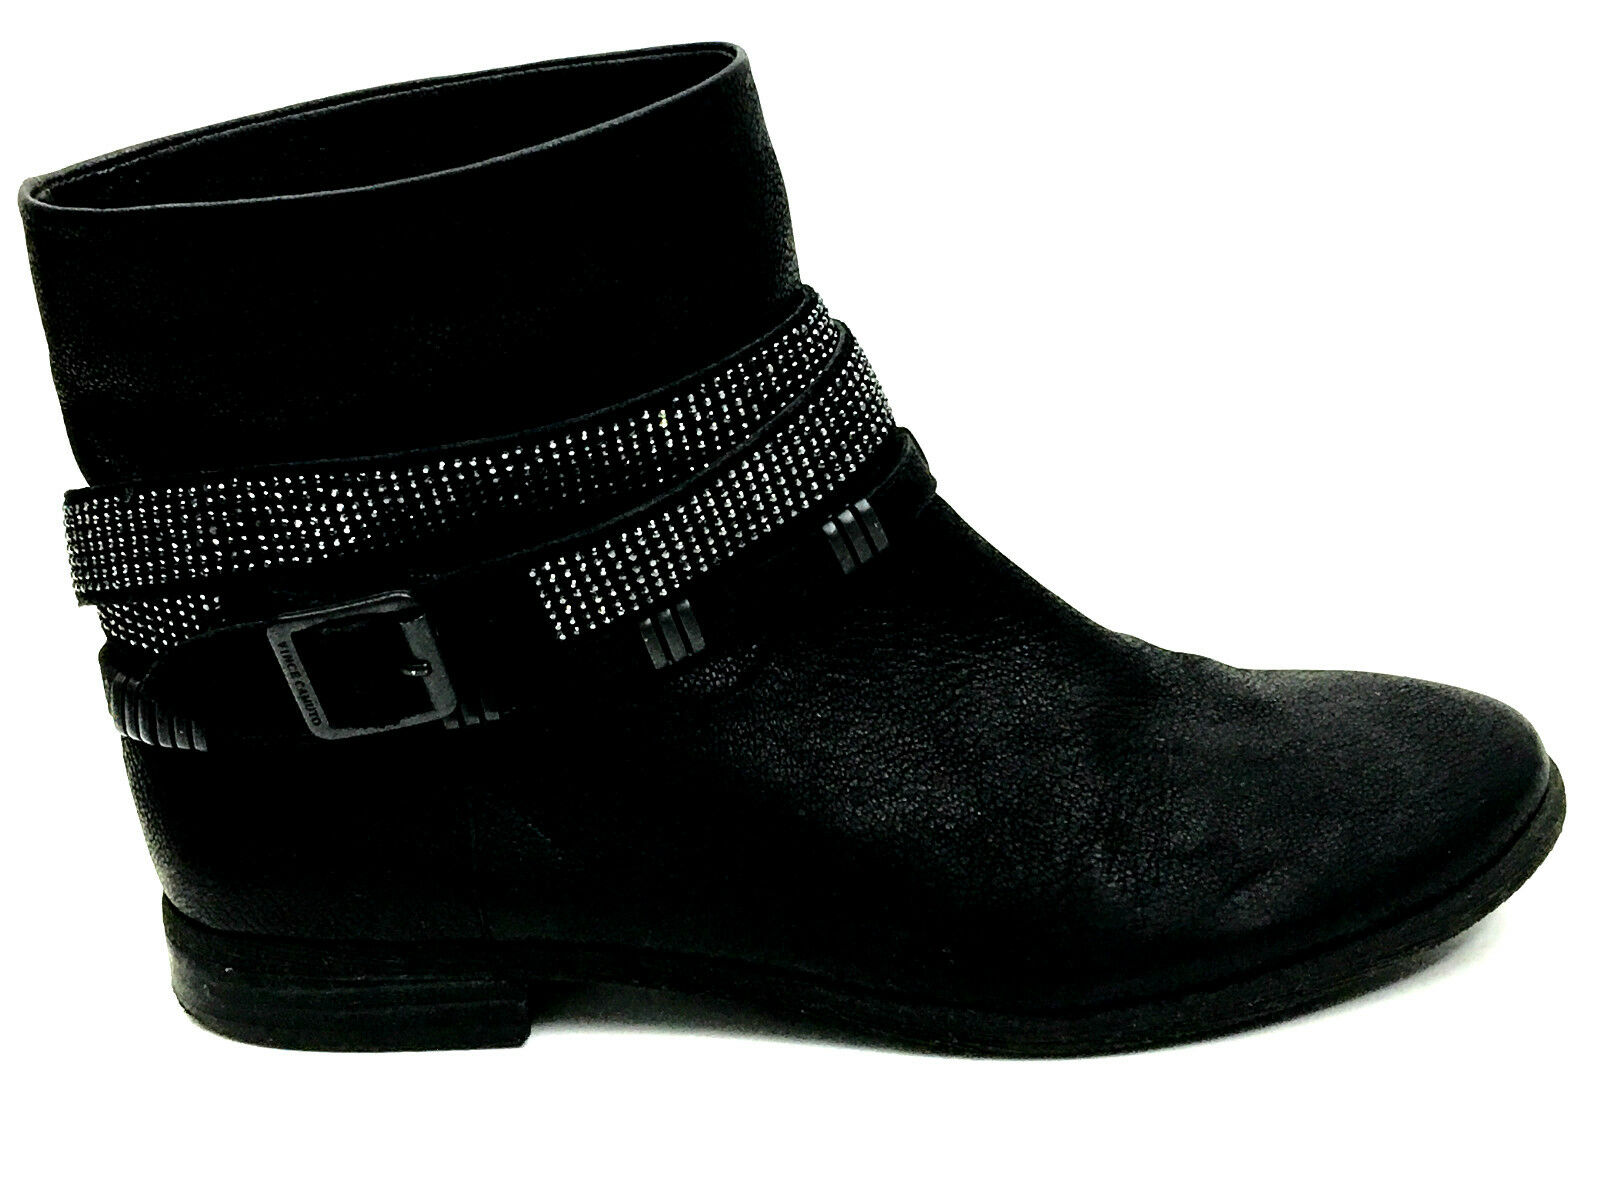 Vince Camuto Glitter Belted Boots Black Size 9 USA EUR.39